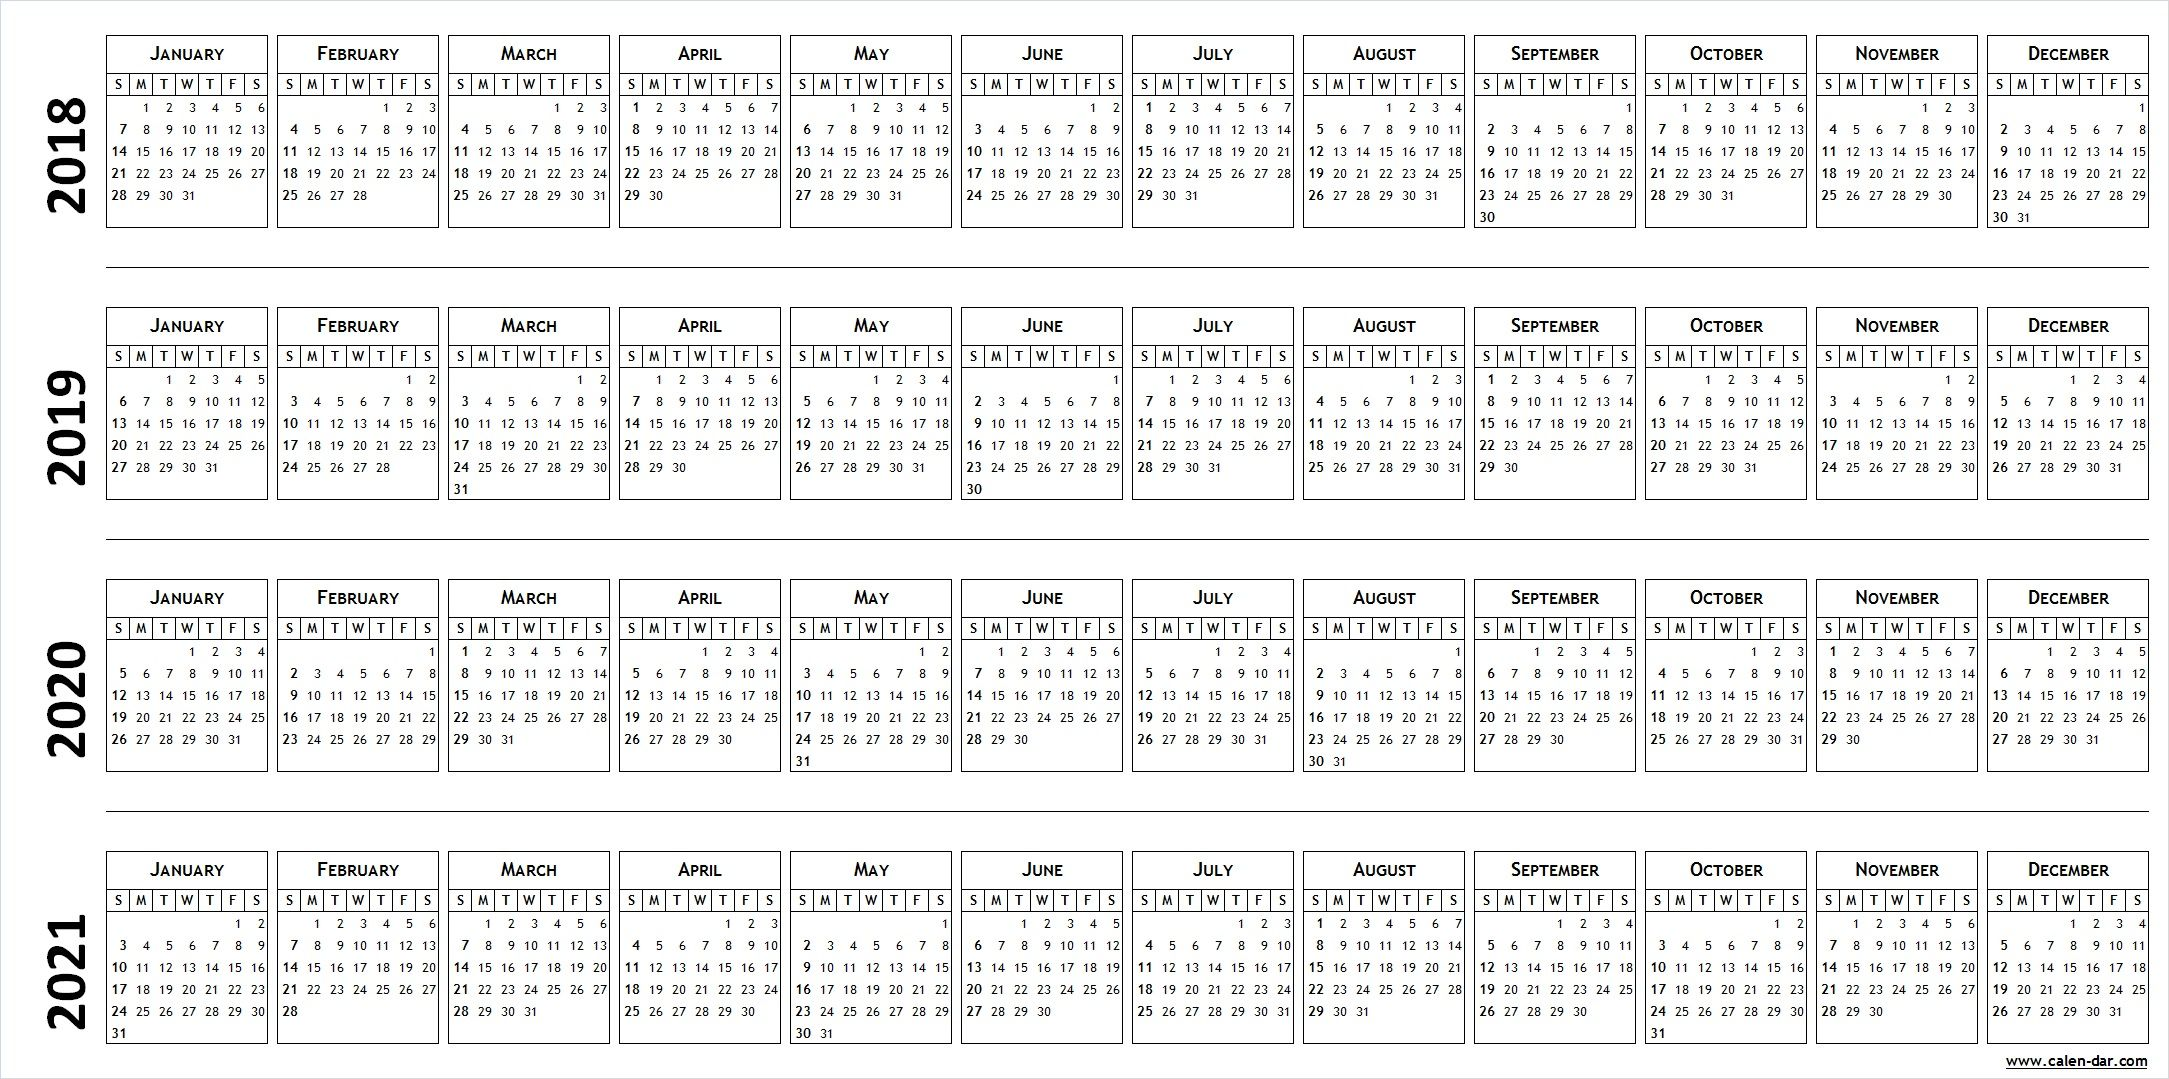 4 Four Year Blank Calendar 2018 2019 2020 2021 Calendar Template Marketing Calendar Template Excel Calendar Template